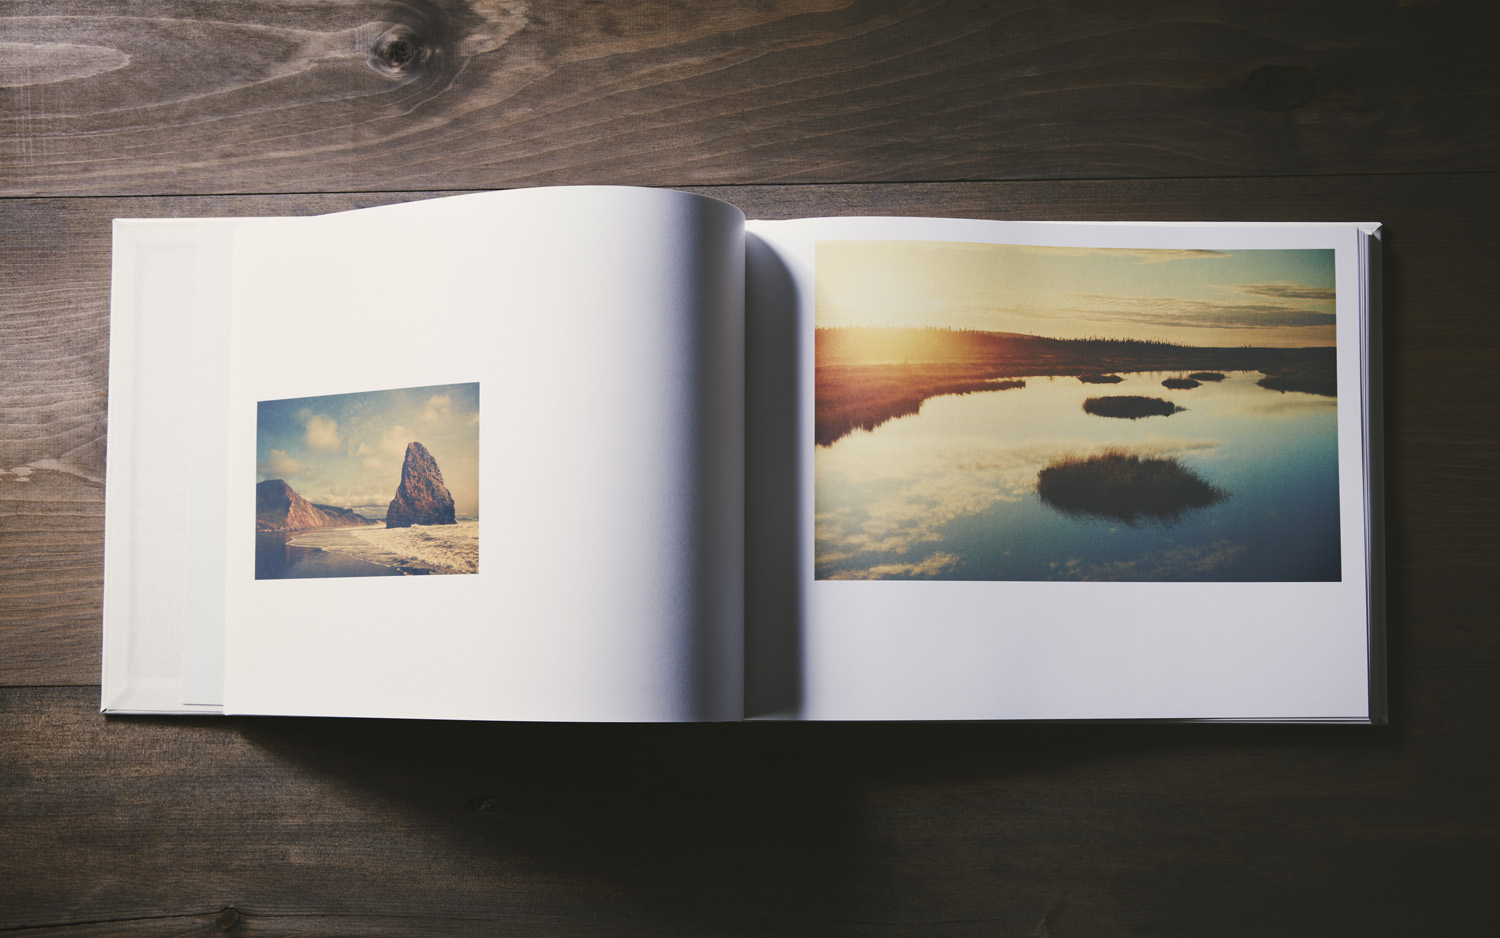 """The book spread open is 11""""x28"""" giving the landscapes room to breathe."""